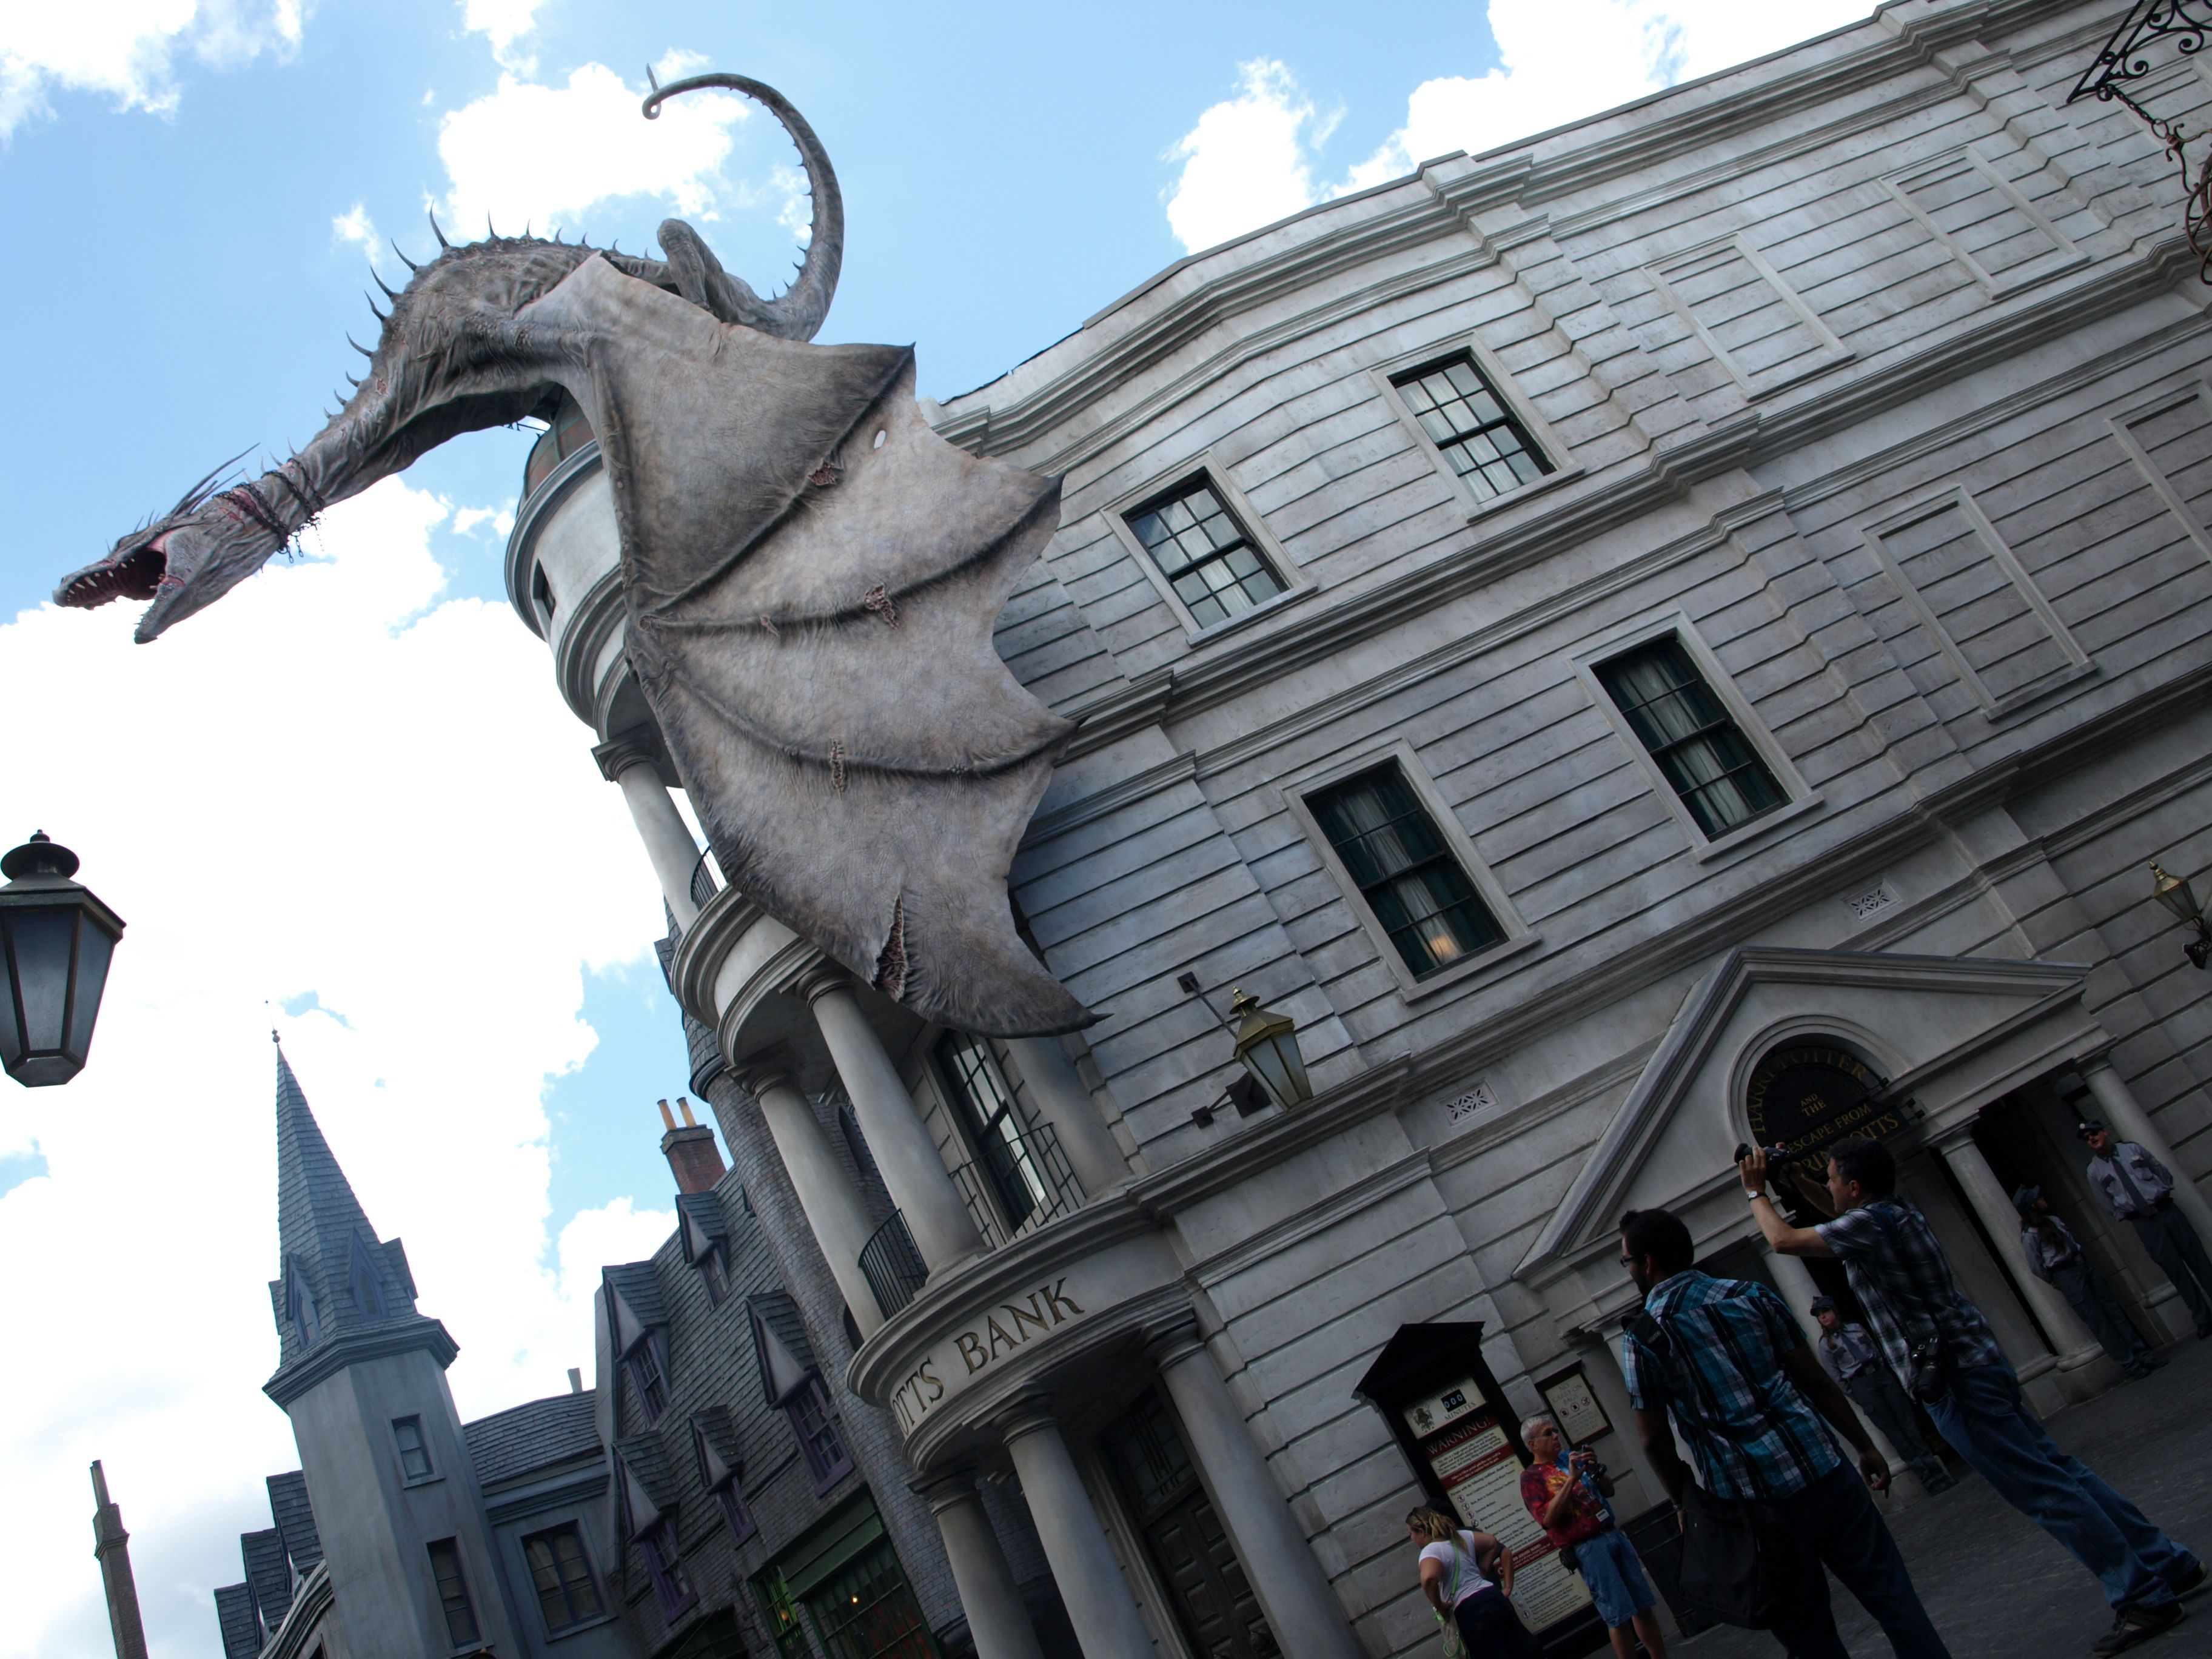 Gringotts Bank And The Entrance To Harry Potter And The Escape From Gringotts Wizarding World Of Harry Potter Wizarding World Harry Potter World California